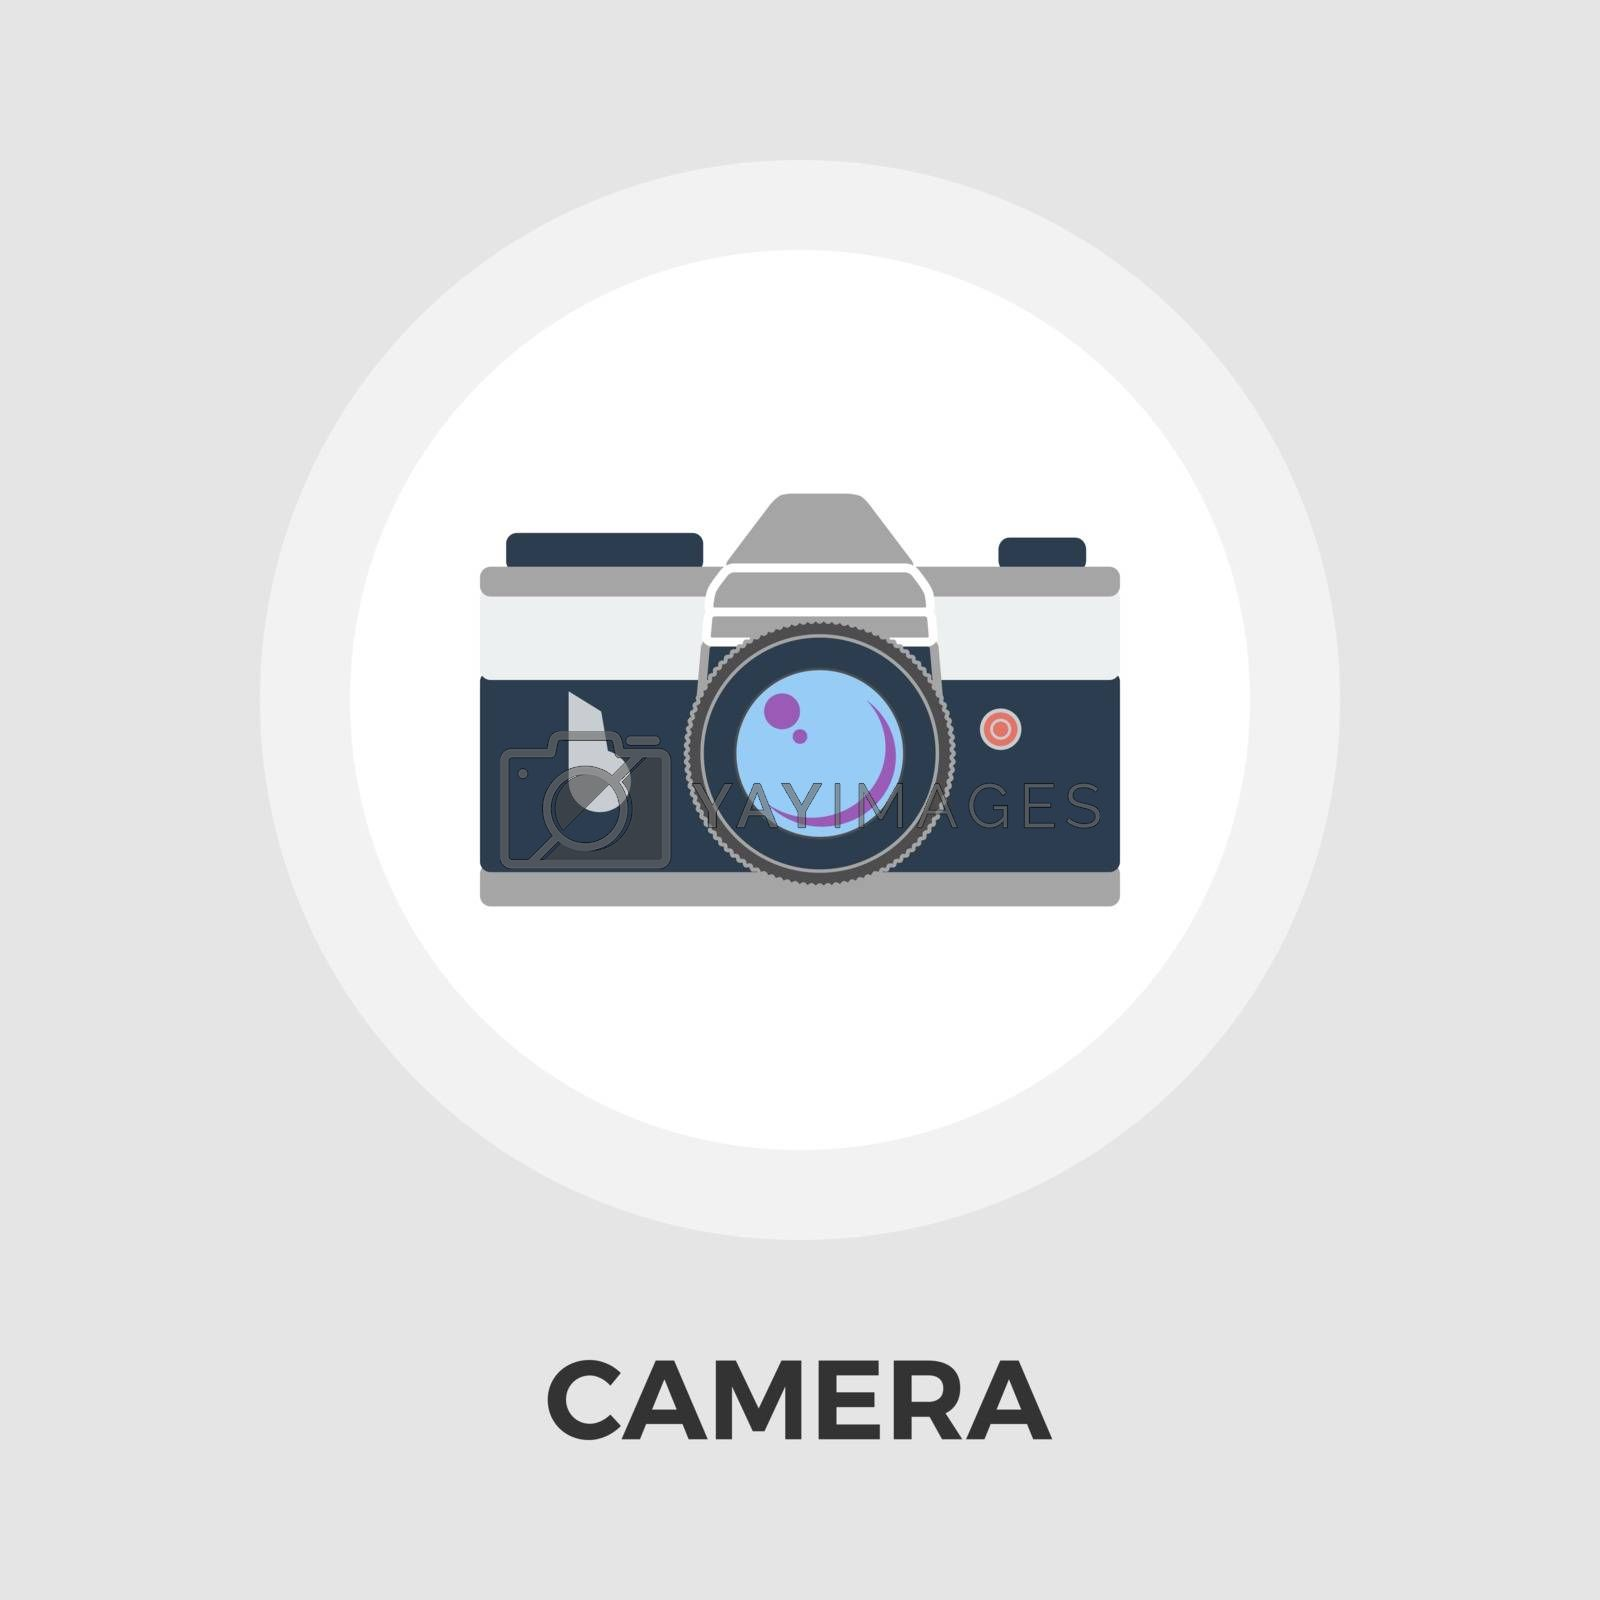 Camera Icon Vector. Flat icon isolated on the white background. Editable EPS file. Vector illustration.